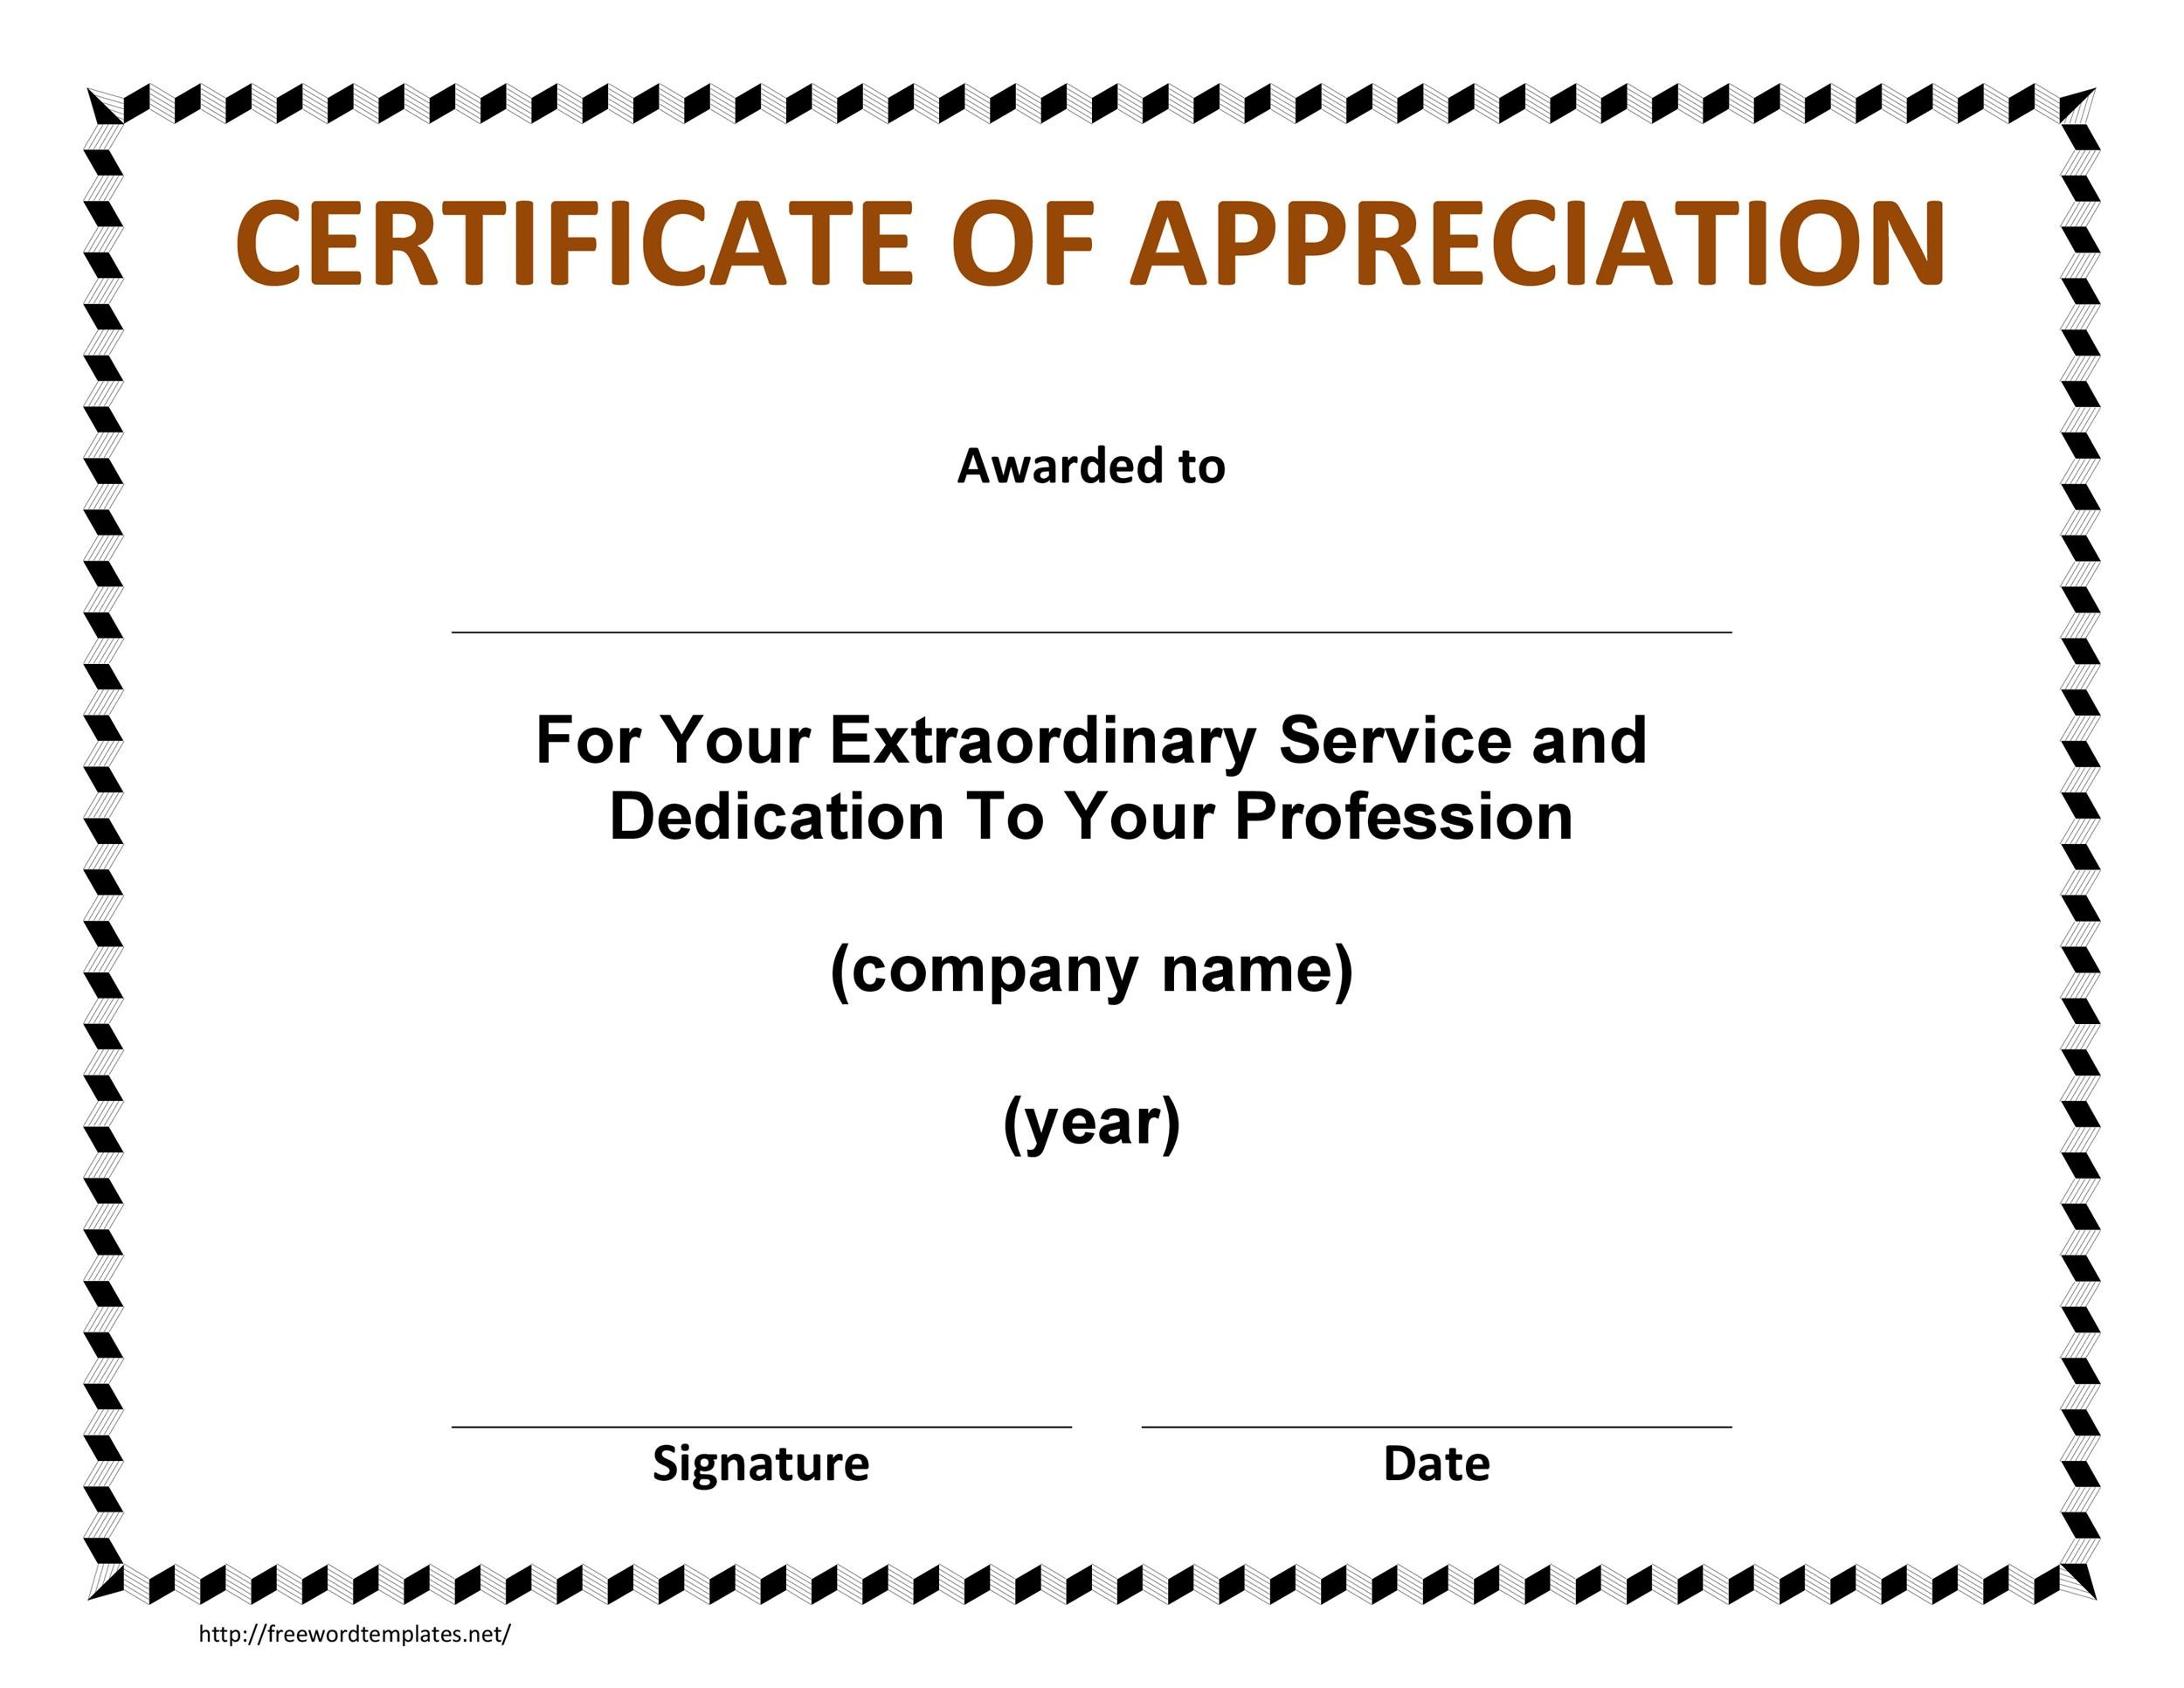 30 free certificate of appreciation templates and letters printable certificate of appreciation 04 spiritdancerdesigns Gallery